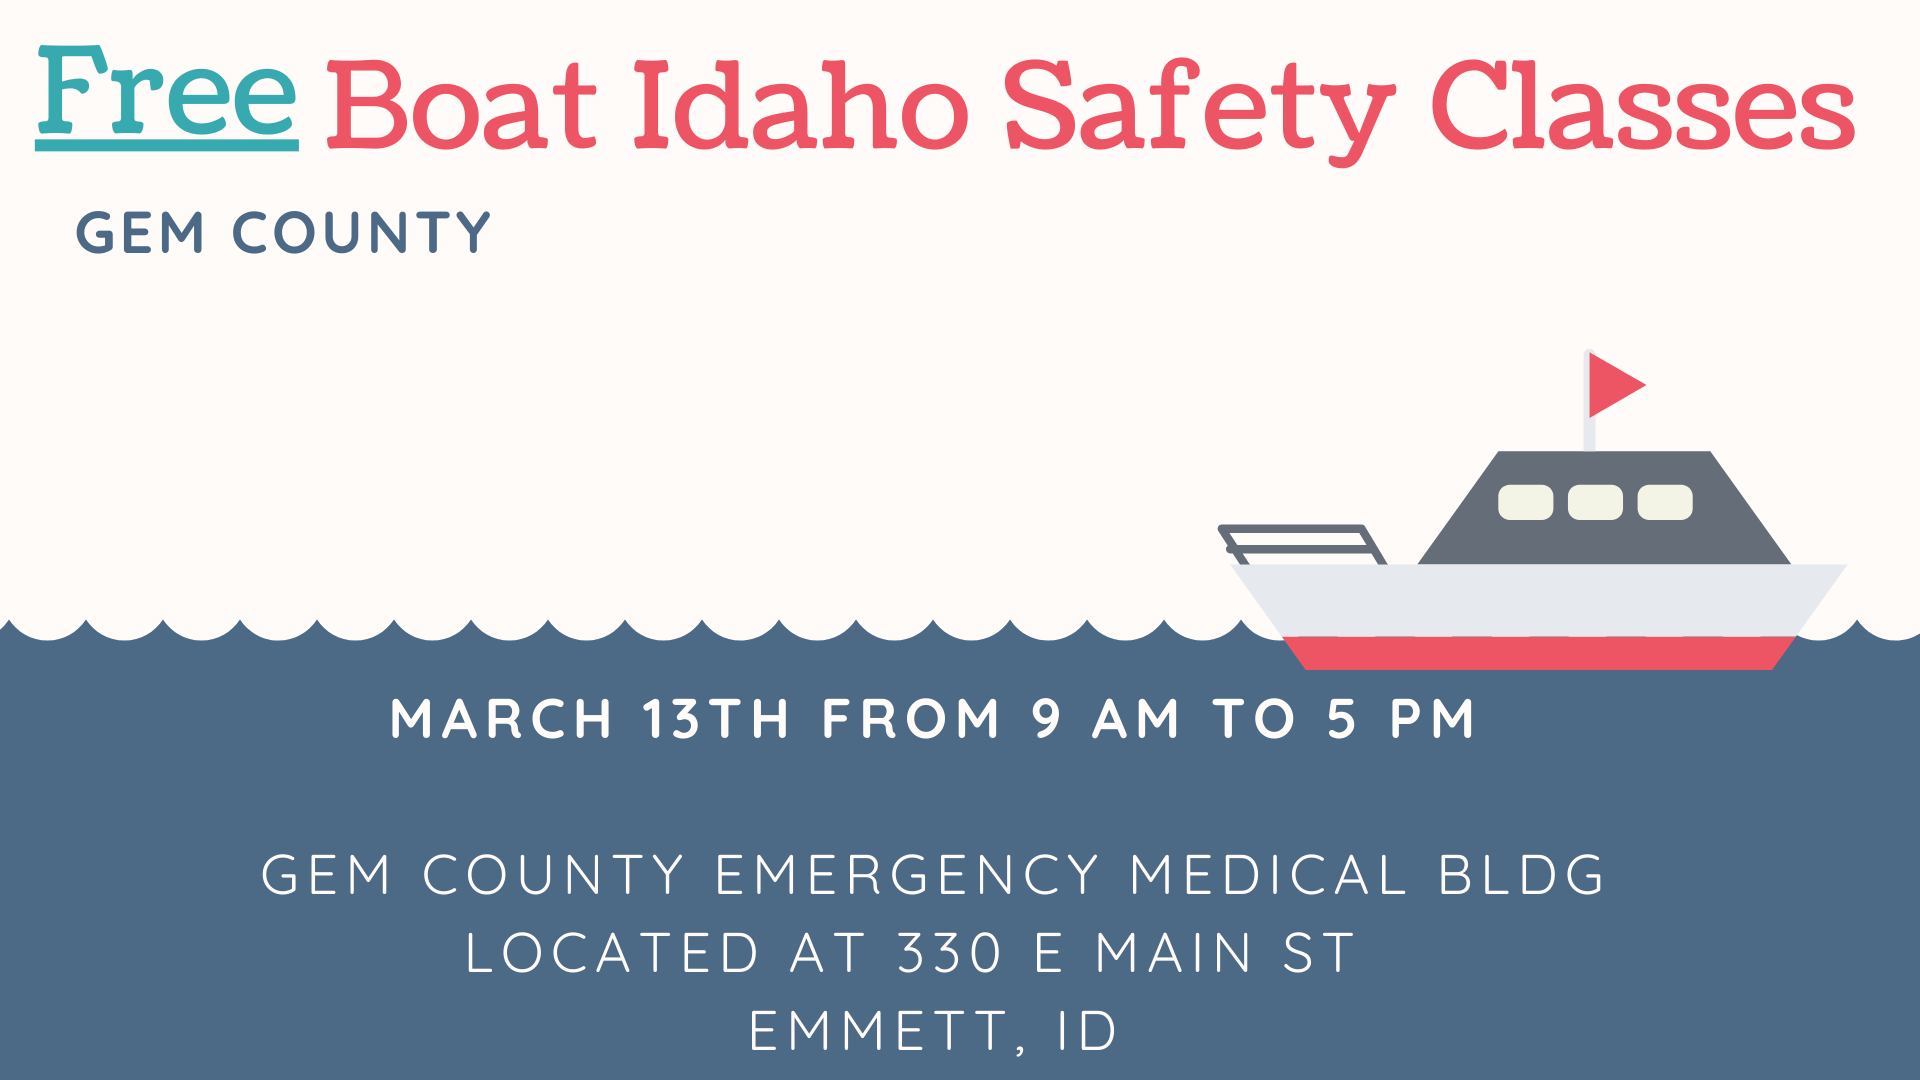 Boat Safety Class in Gem county on March 13